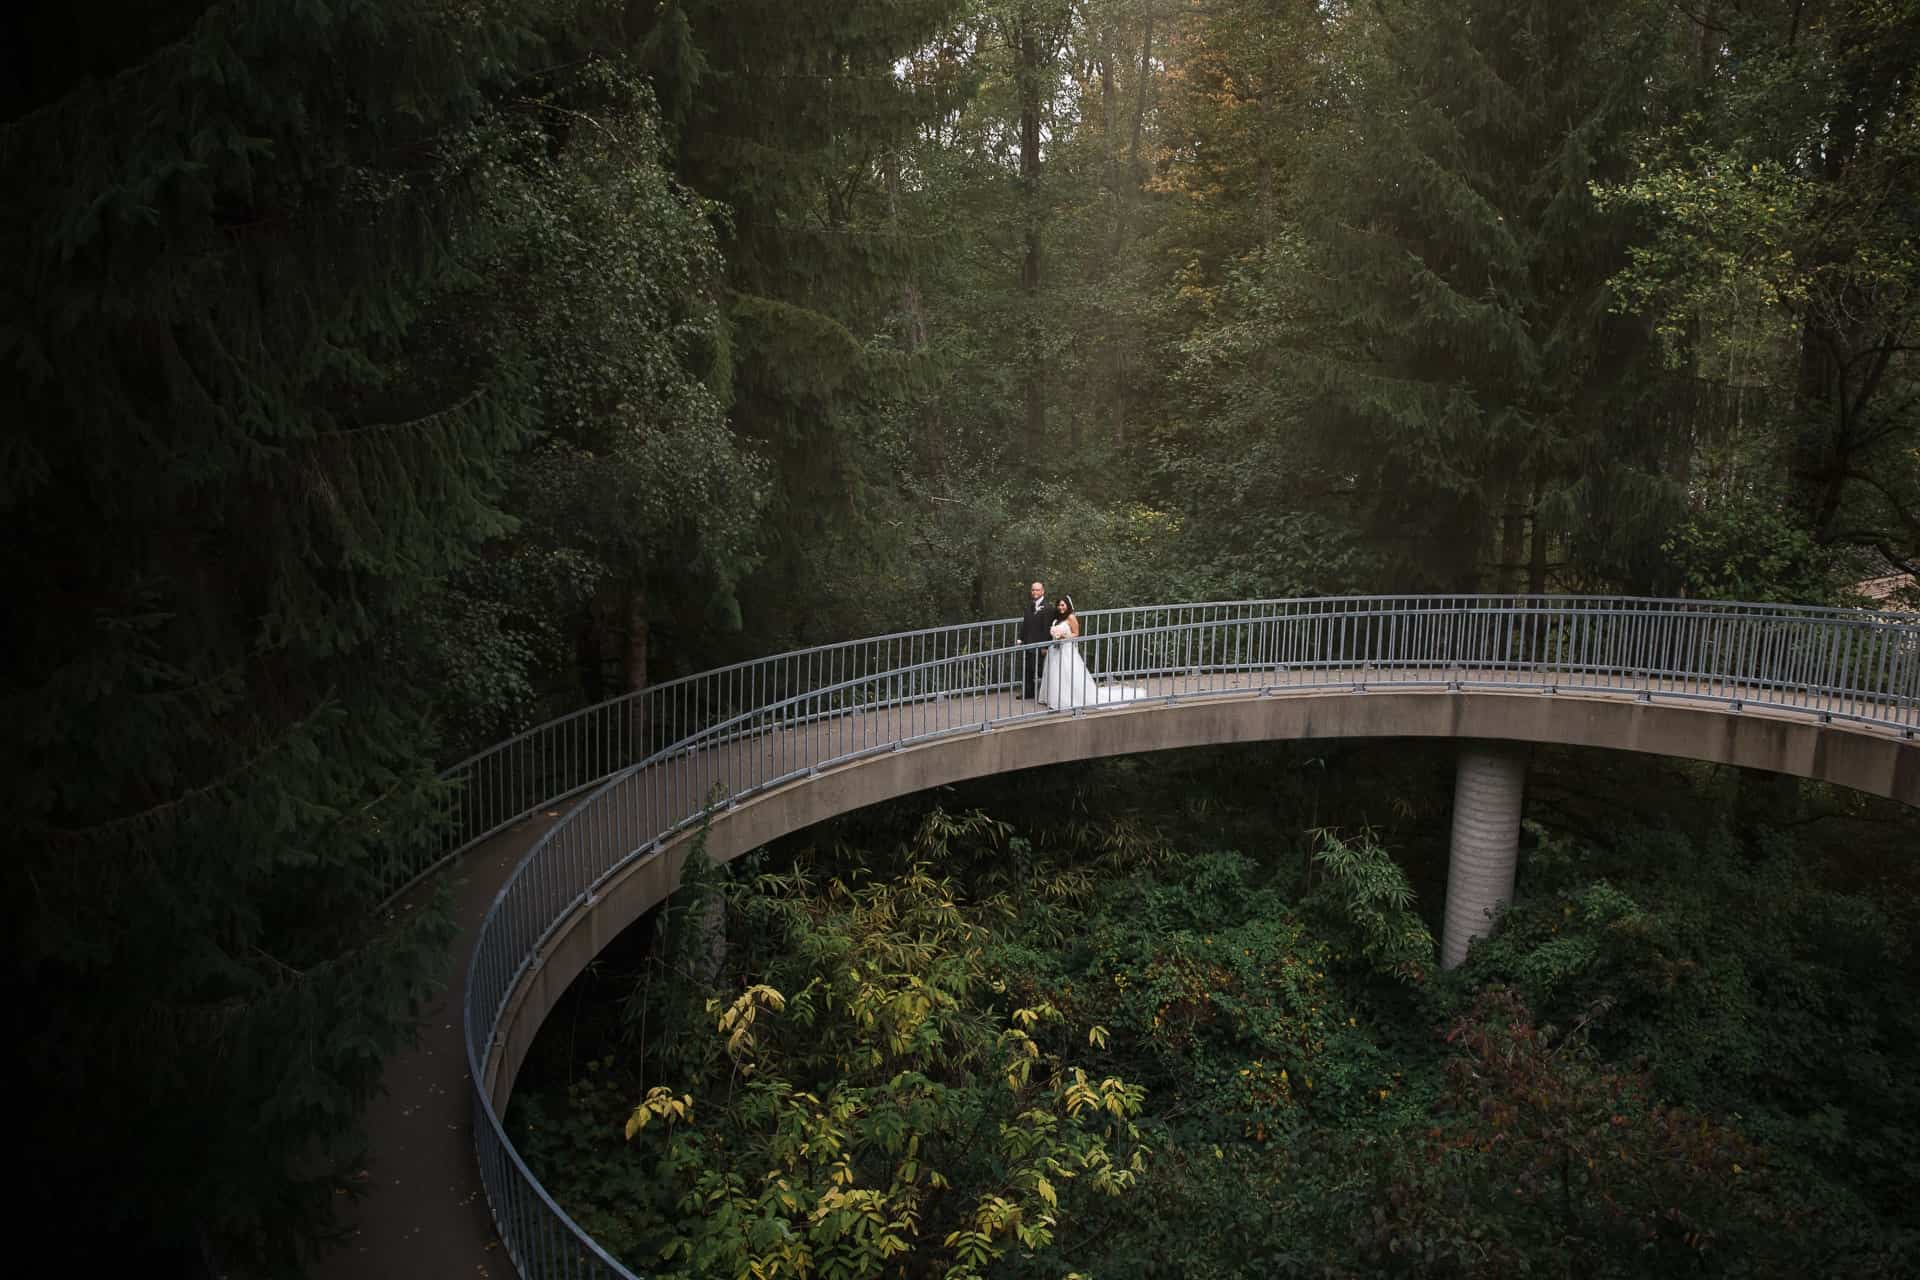 bride and groom standing on a bridge in a forest